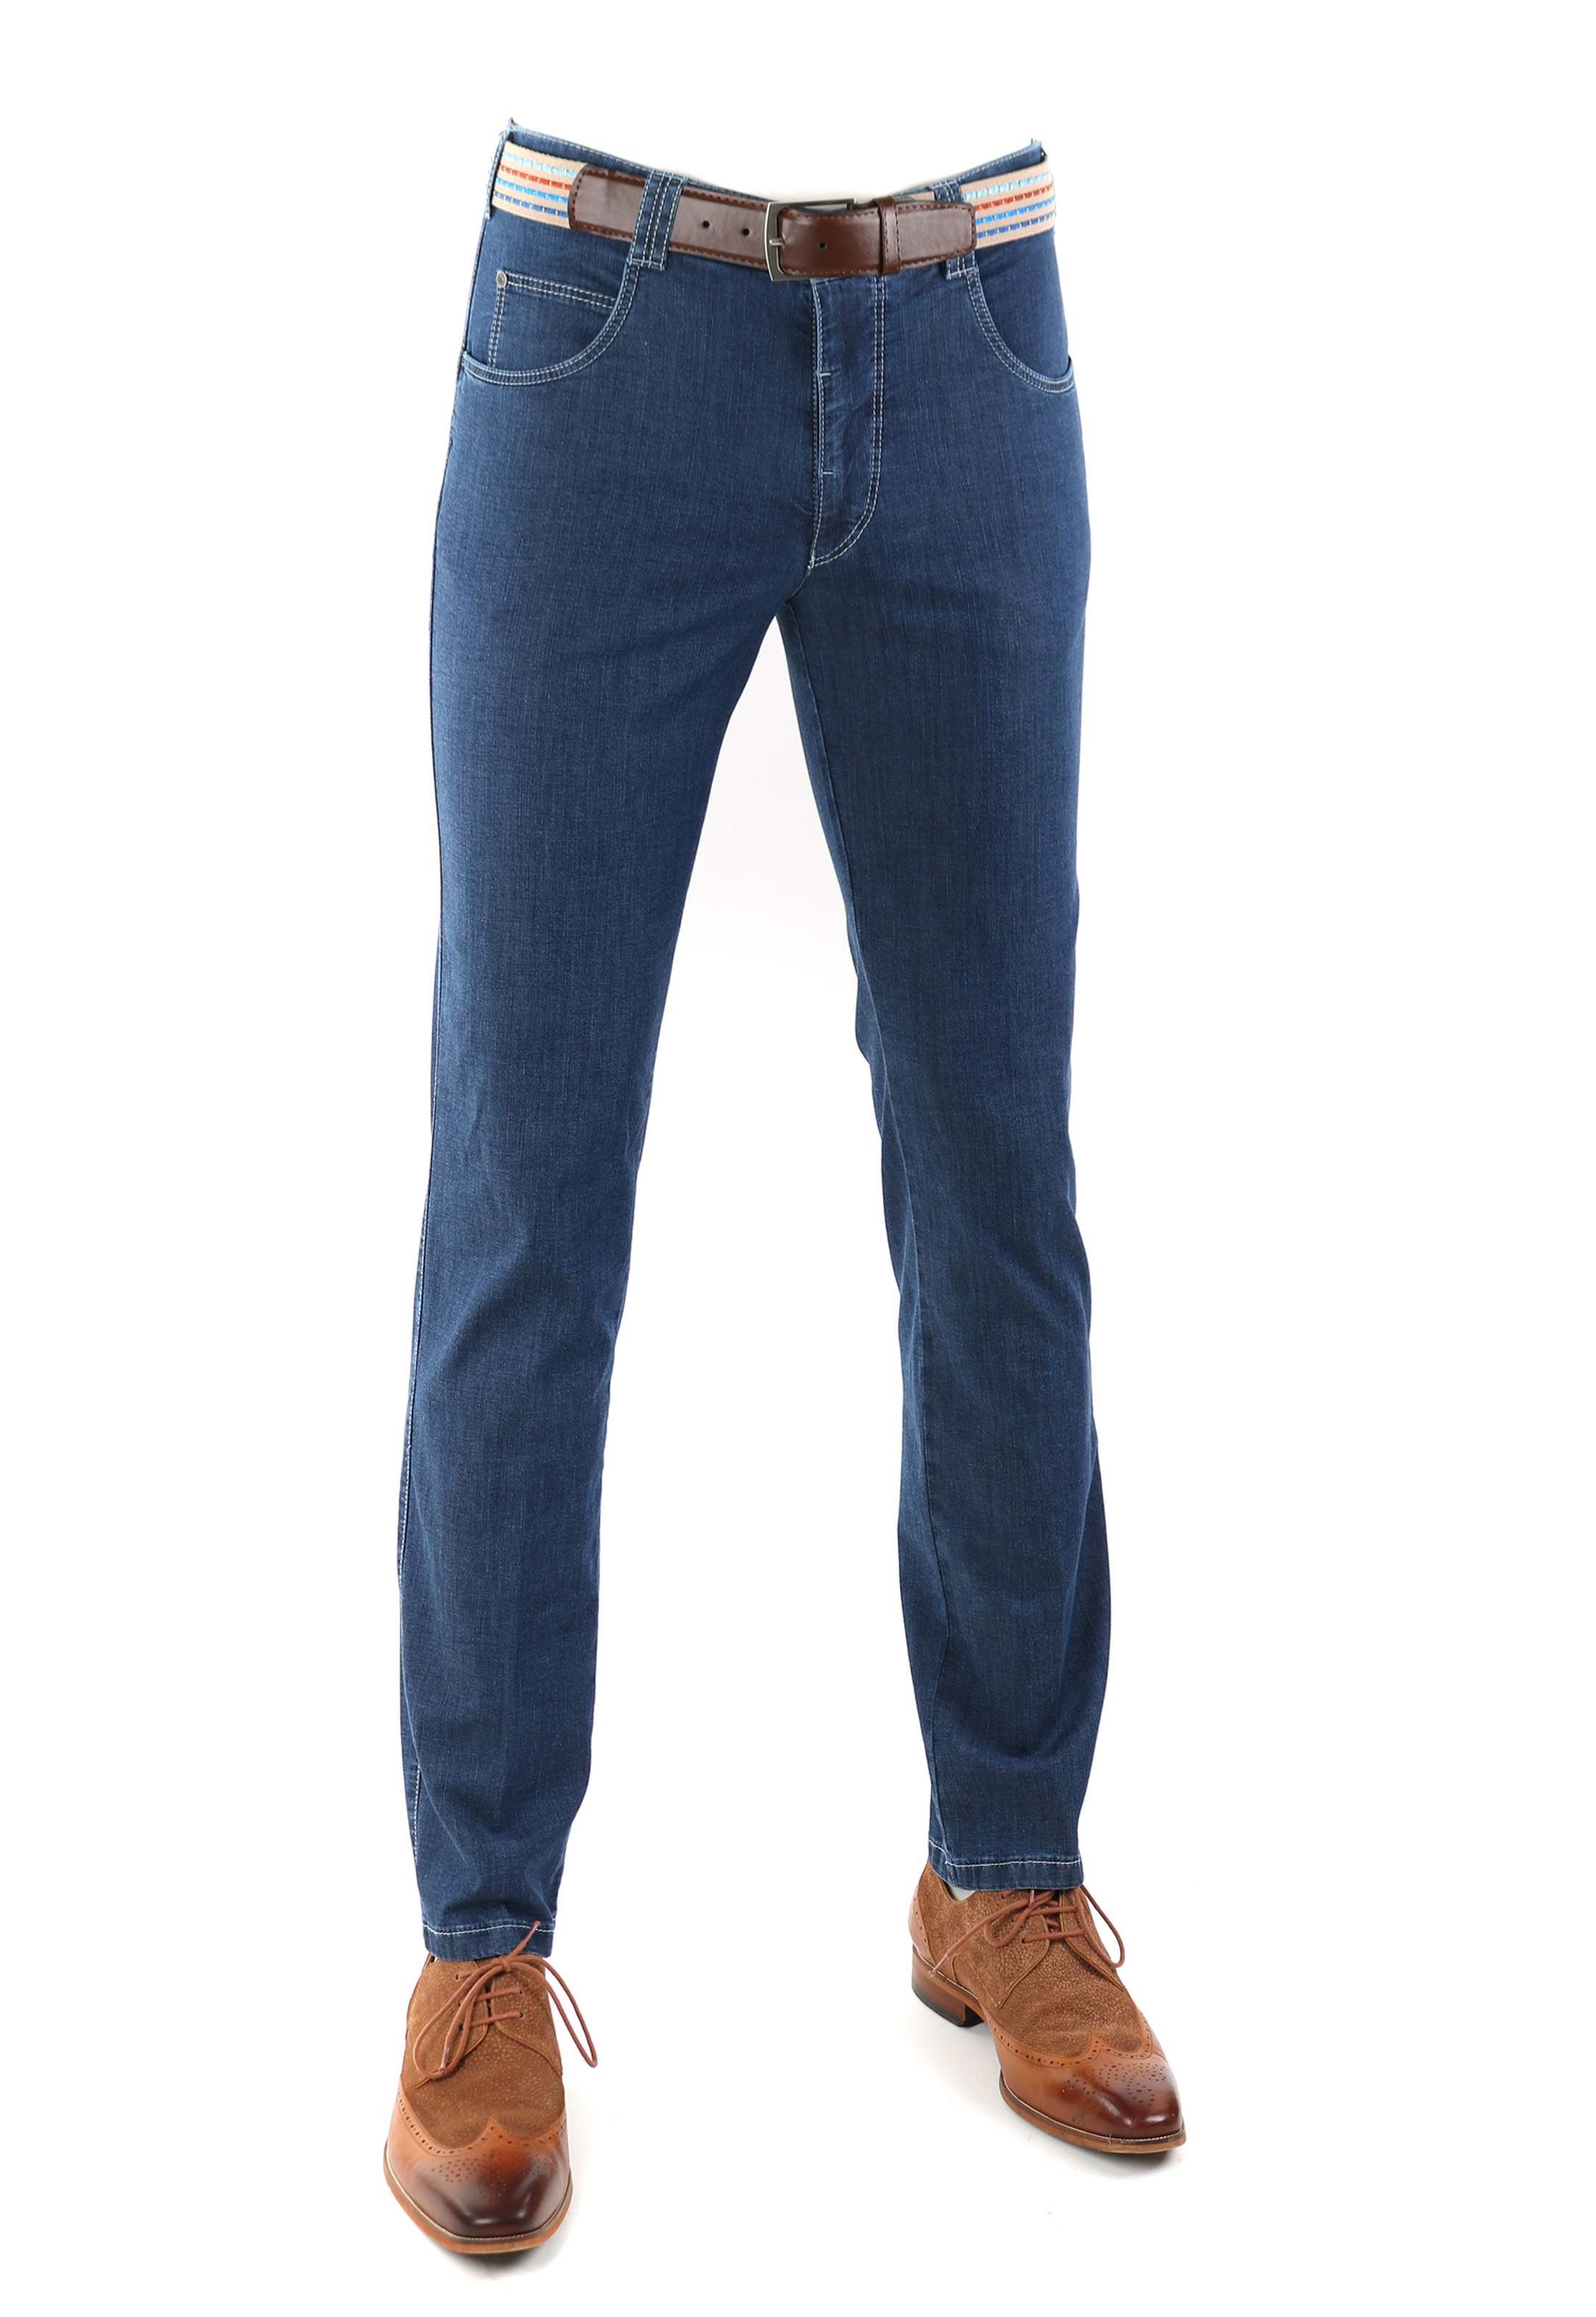 Meyer jeans dubai blauw online bestellen suitable for Designhotel maastricht comfort xl